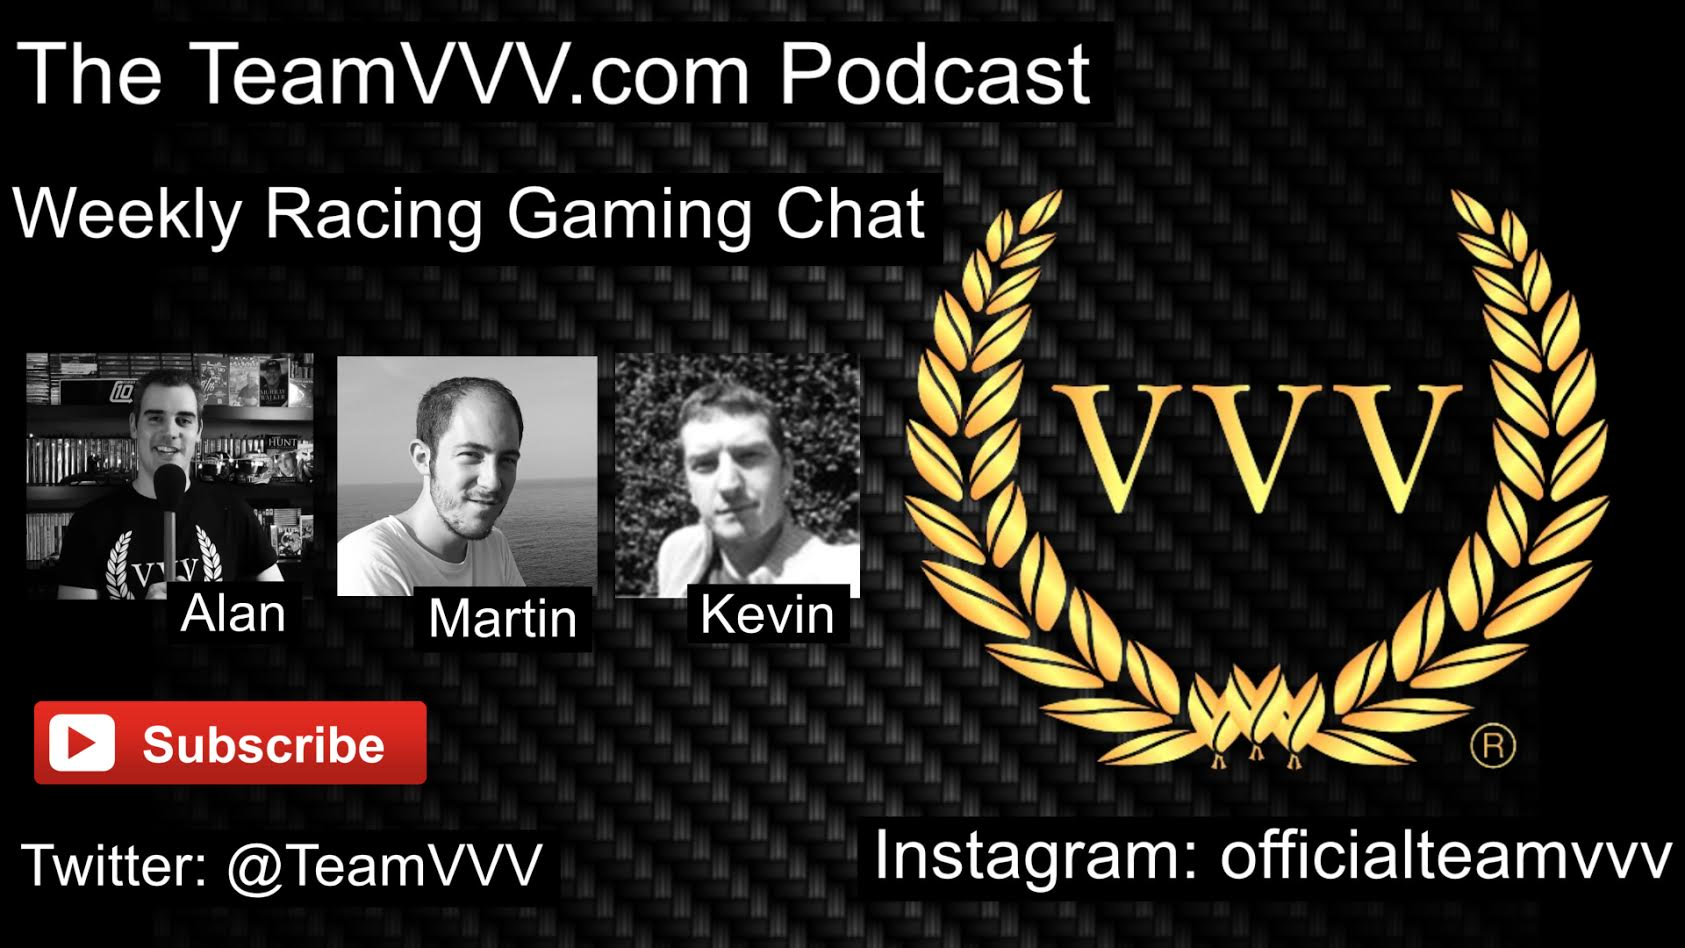 The TeamVVV Podcast Episode 4 - Chatting Carmageddon